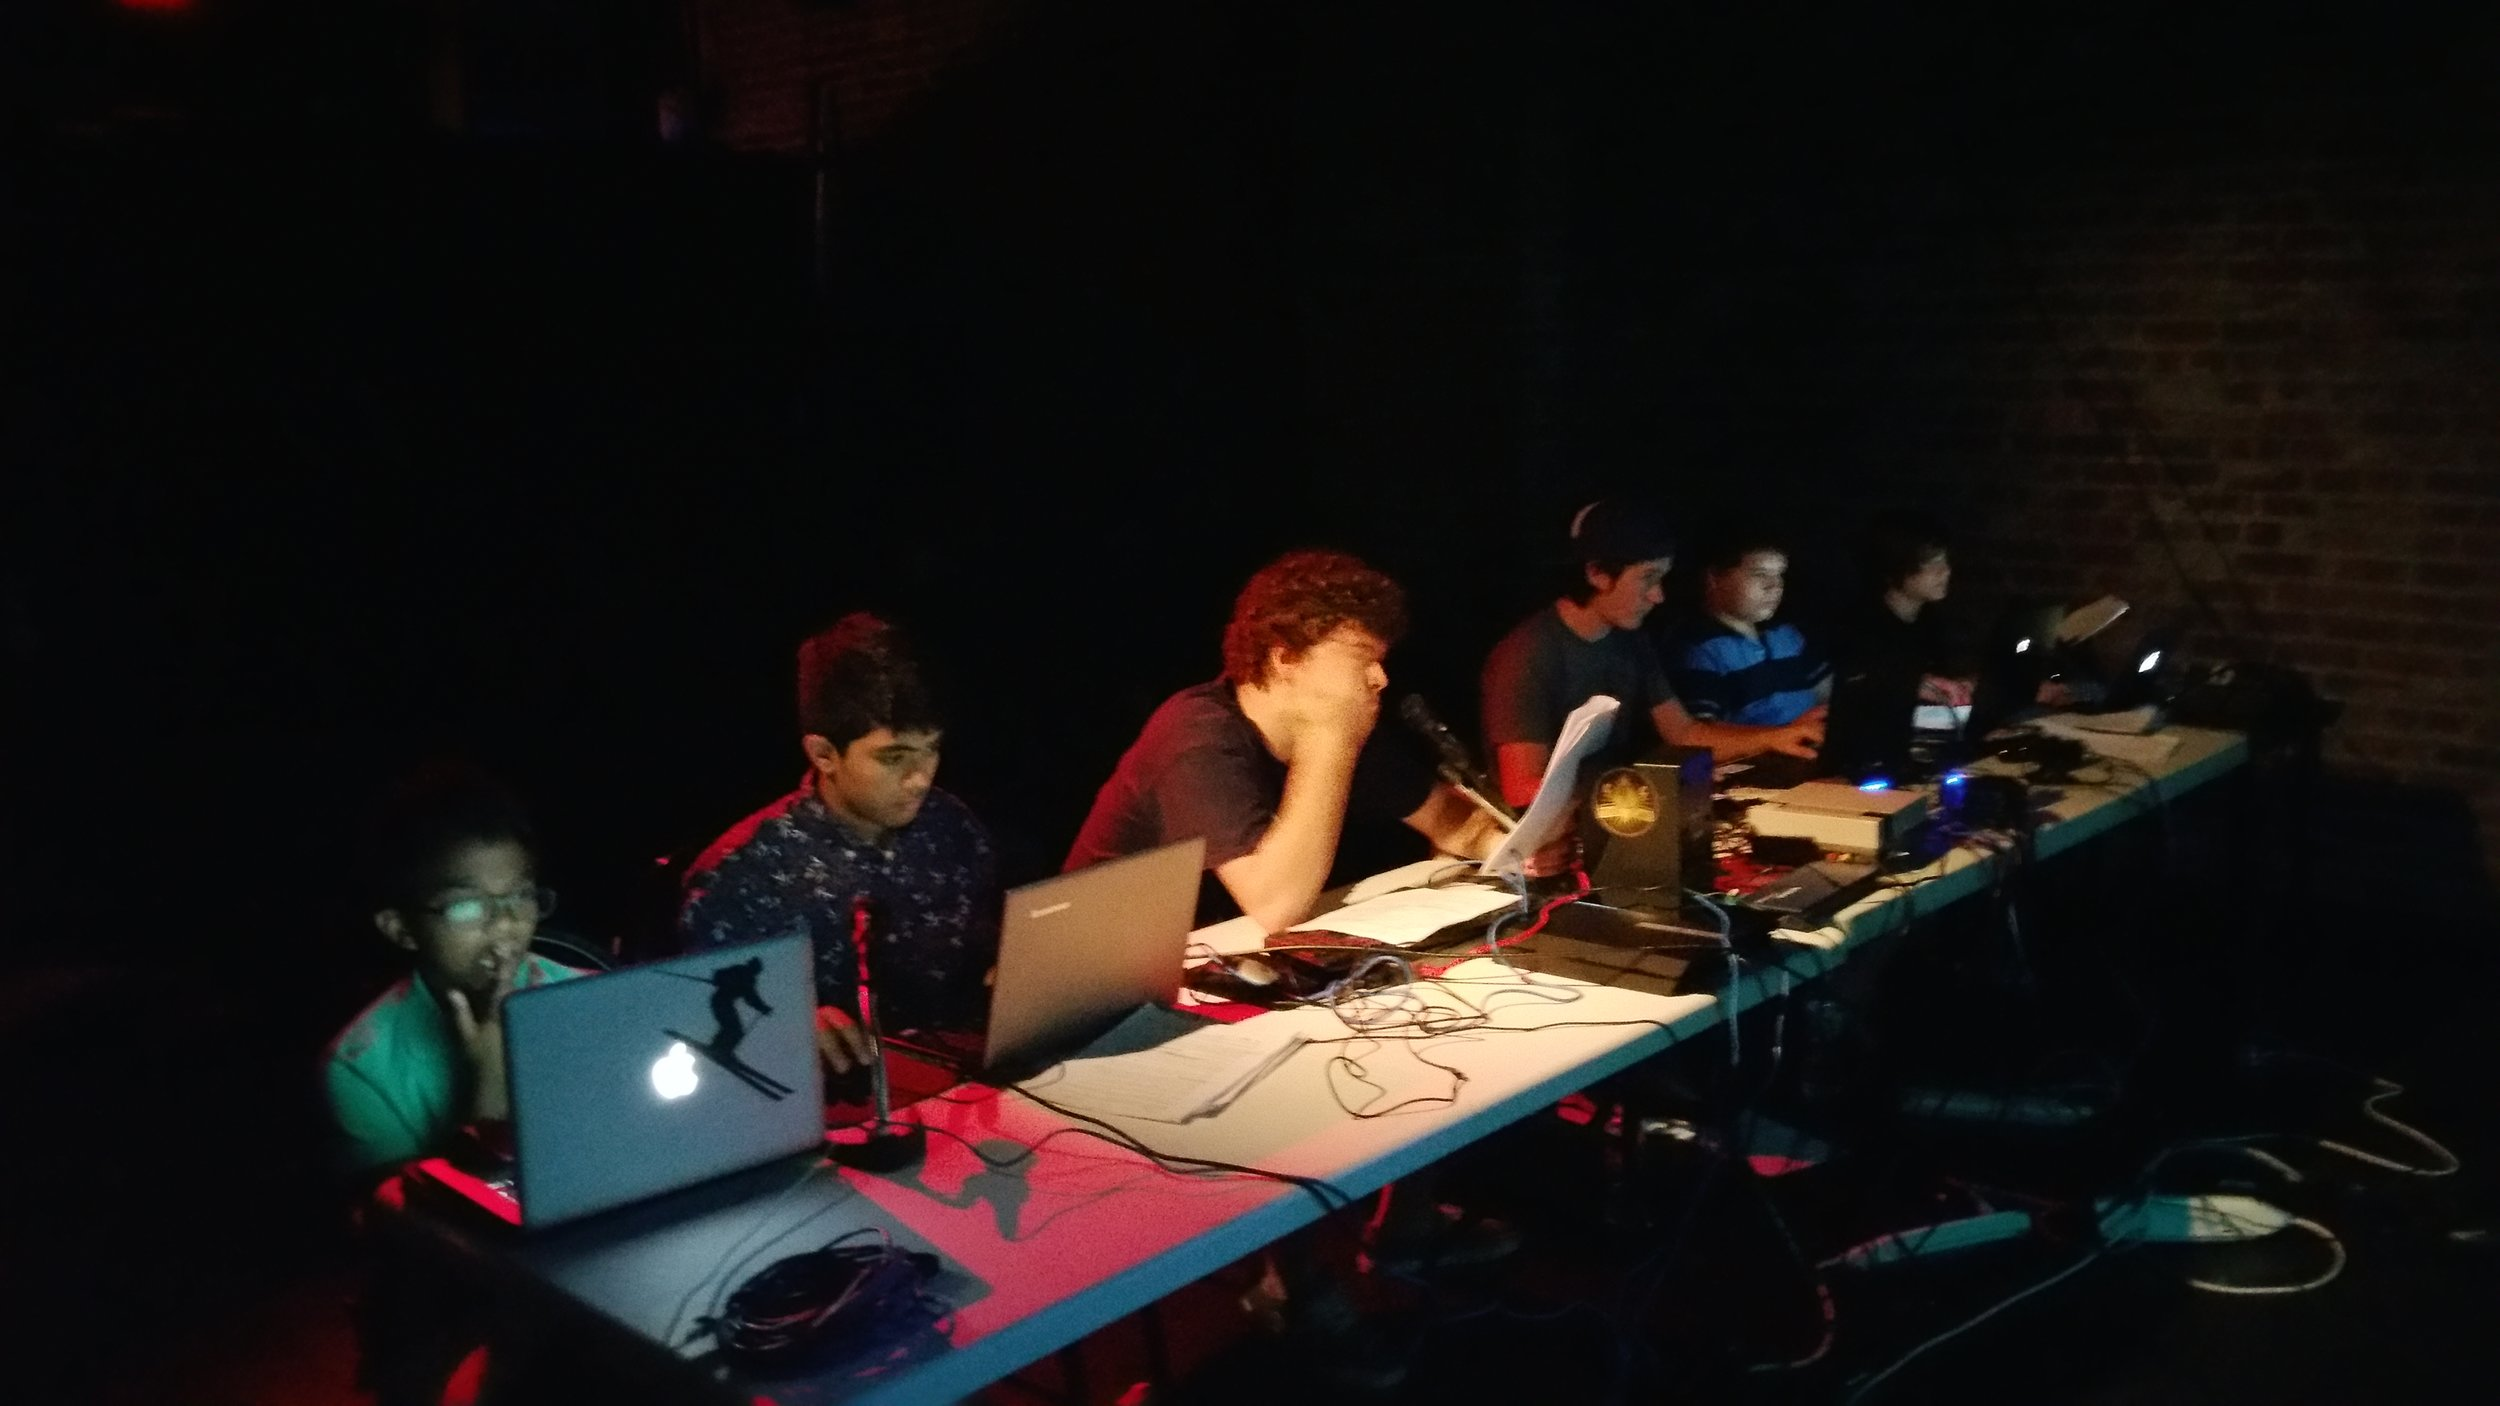 puppeteers | video game | theater